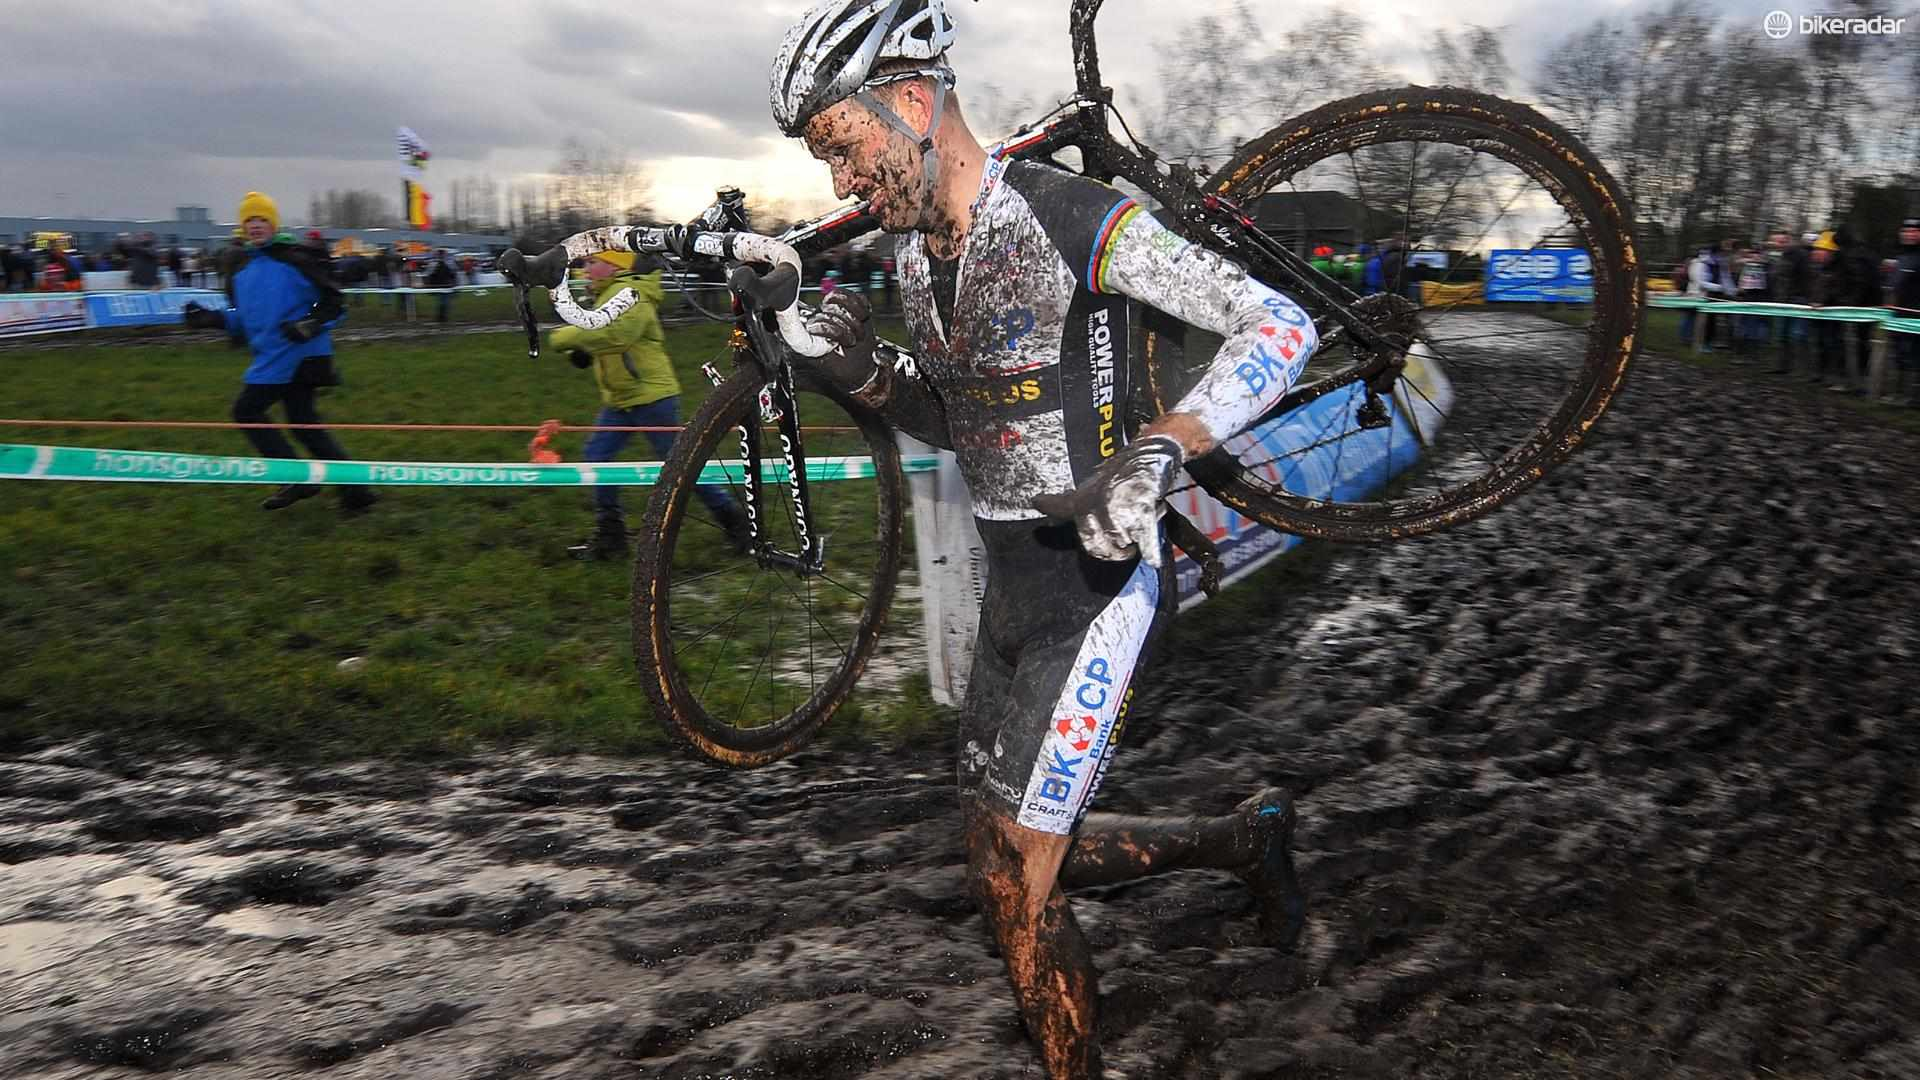 Cyclocross is good for you - give it a try